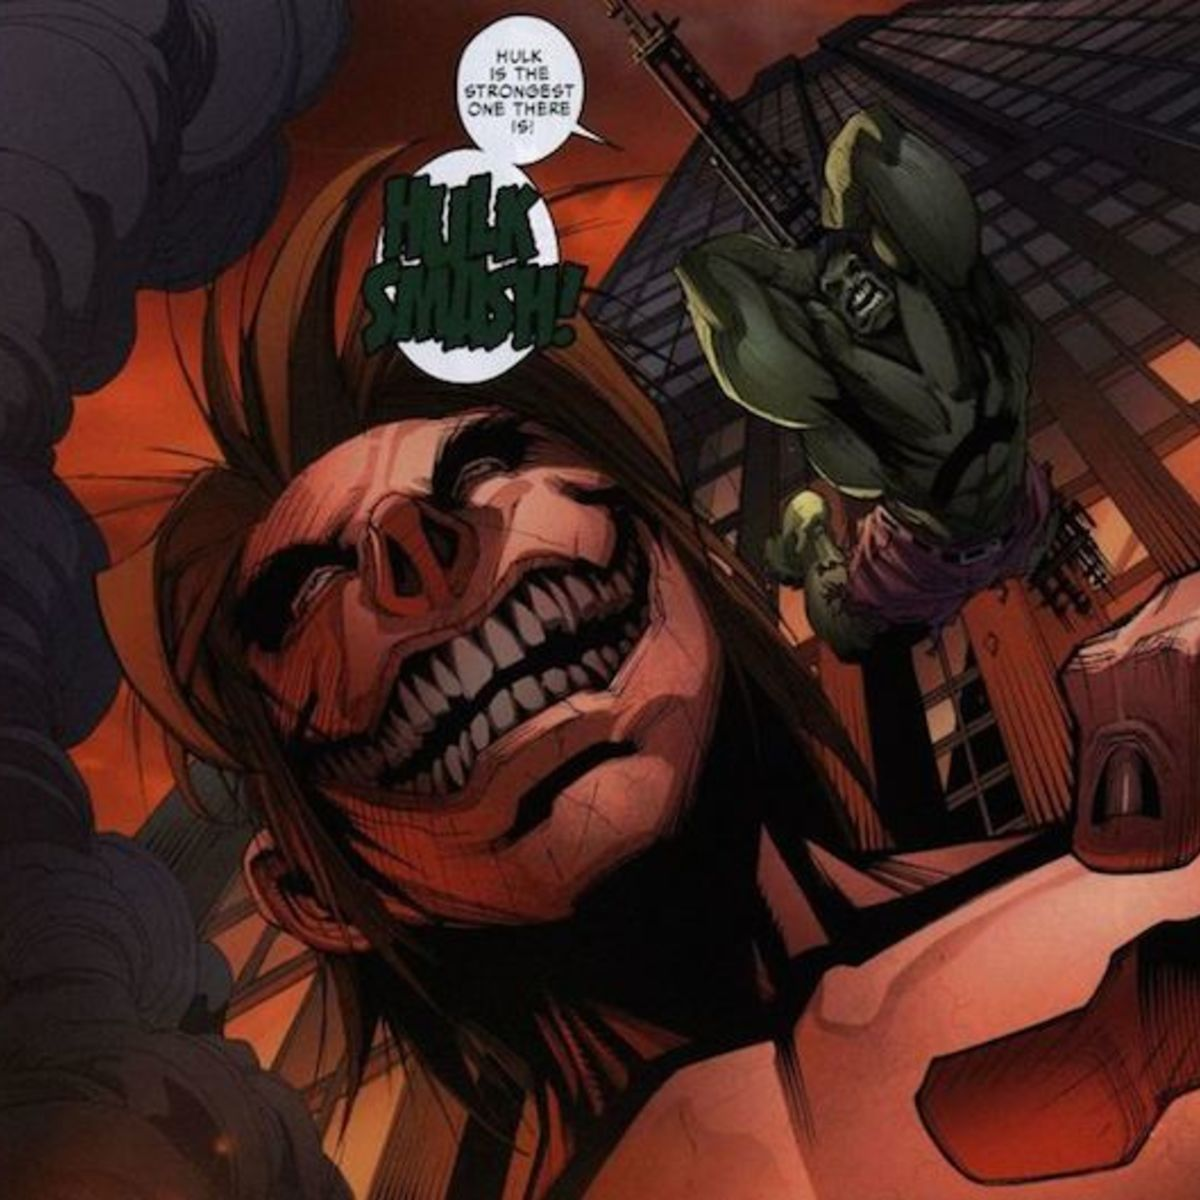 read-full-attack-on-titan-and-avengers-crossover-comic-now7_0.jpg